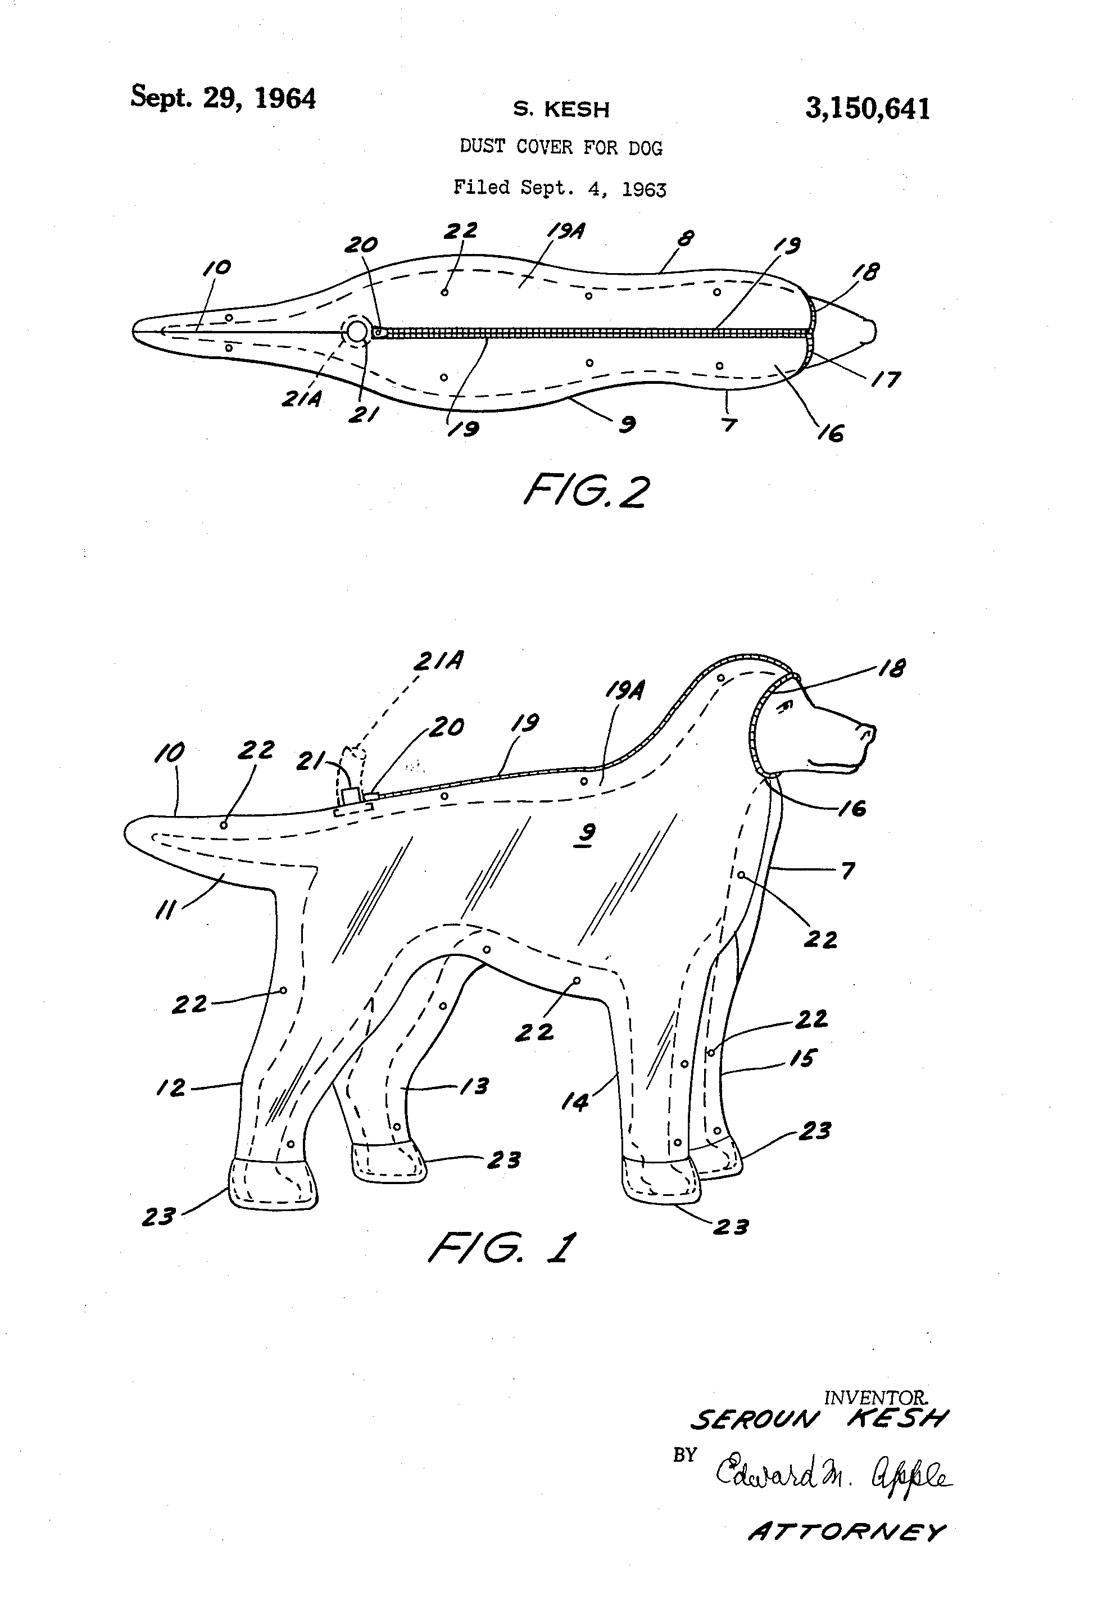 dog-dust-cover-gr